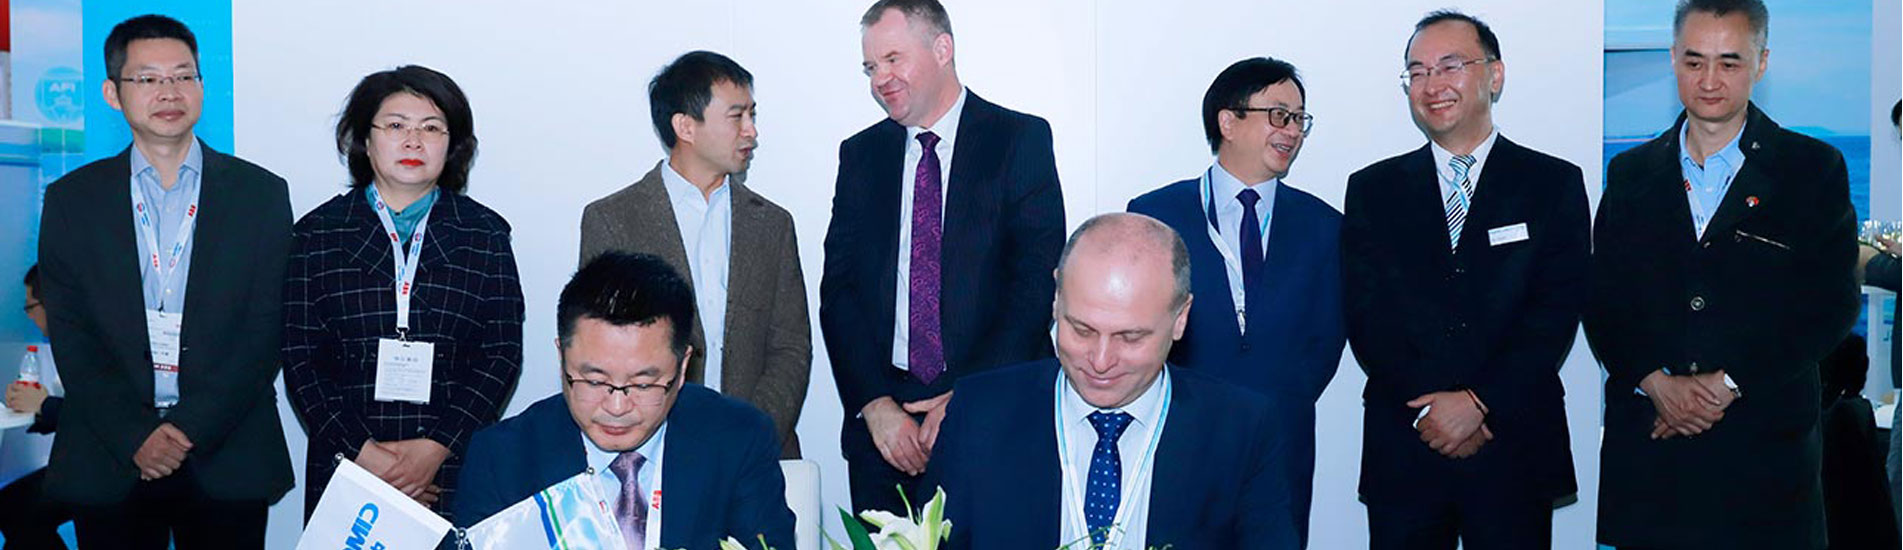 The agreement was signed by Mr. Gao Wenbao, Deputy General Manager of CIMC Enric & CEO of CIMC SOE, Mr. Boris Bondarenko, Area Manager of DNV GL for China South, witnessed by Mr. Yang Xiaohu (3rd from left), General Manager of CIMC Enric, and Mr. Norbert Kray (4th from left), Regional Manager of DNV GL in Greater China, and other senior executive members from the both companies.